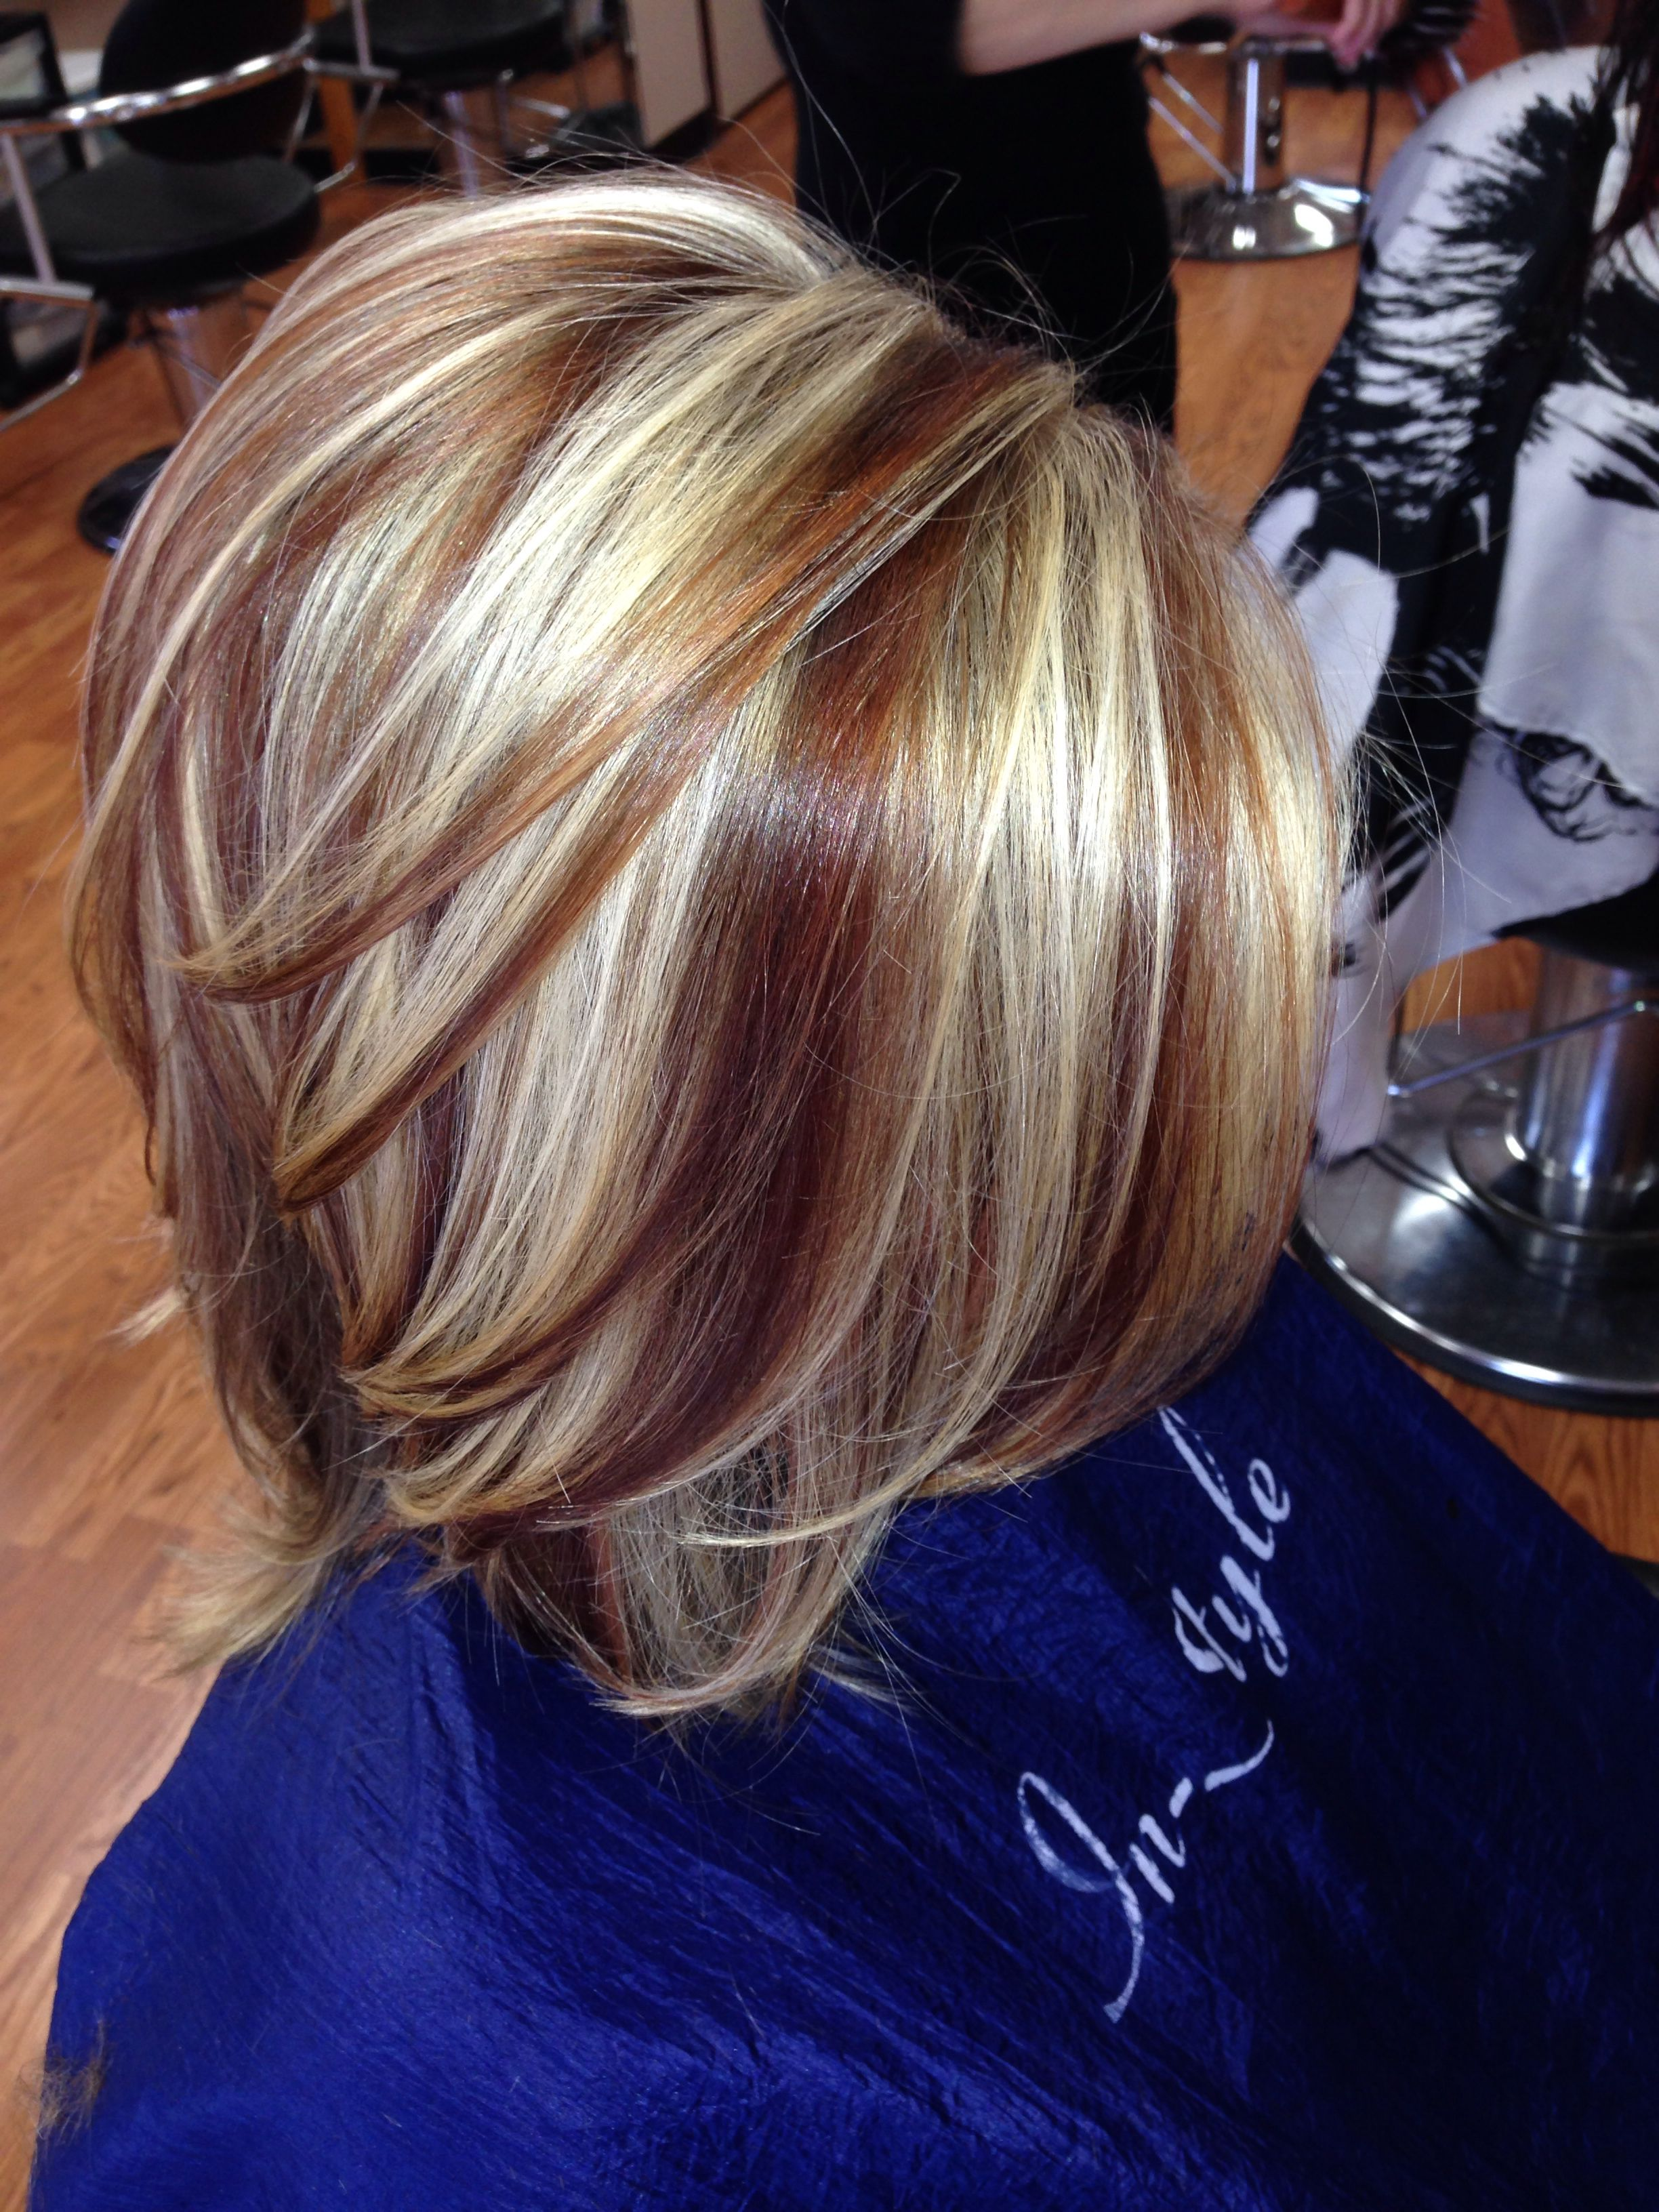 Two Color Hair Styles: Highlights And Lowlights. #highlights #hair #hairstyle